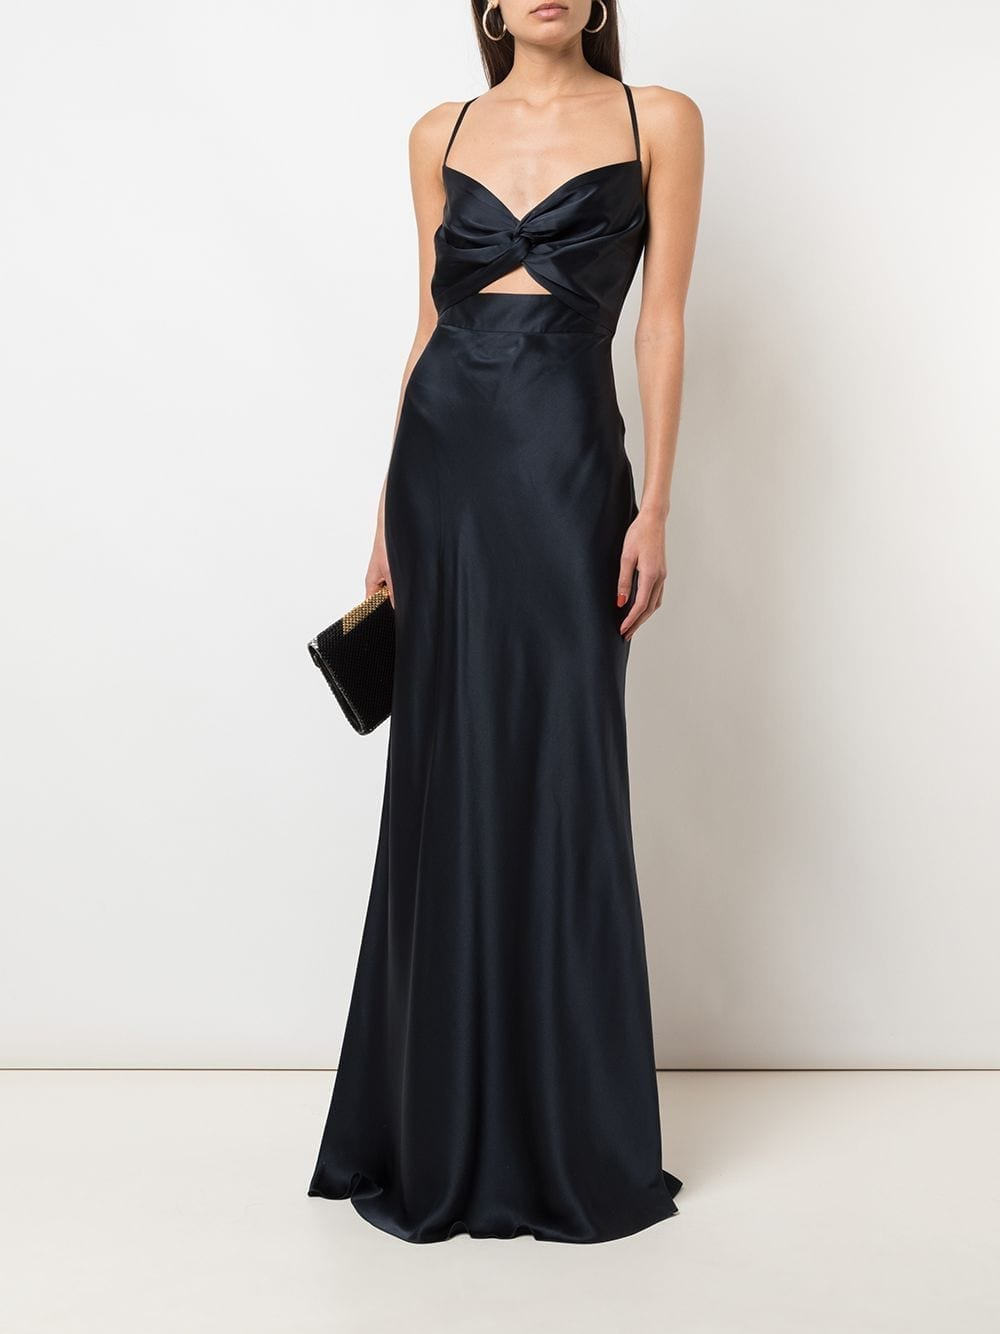 MICHELLE MASON Twist Silk Gown